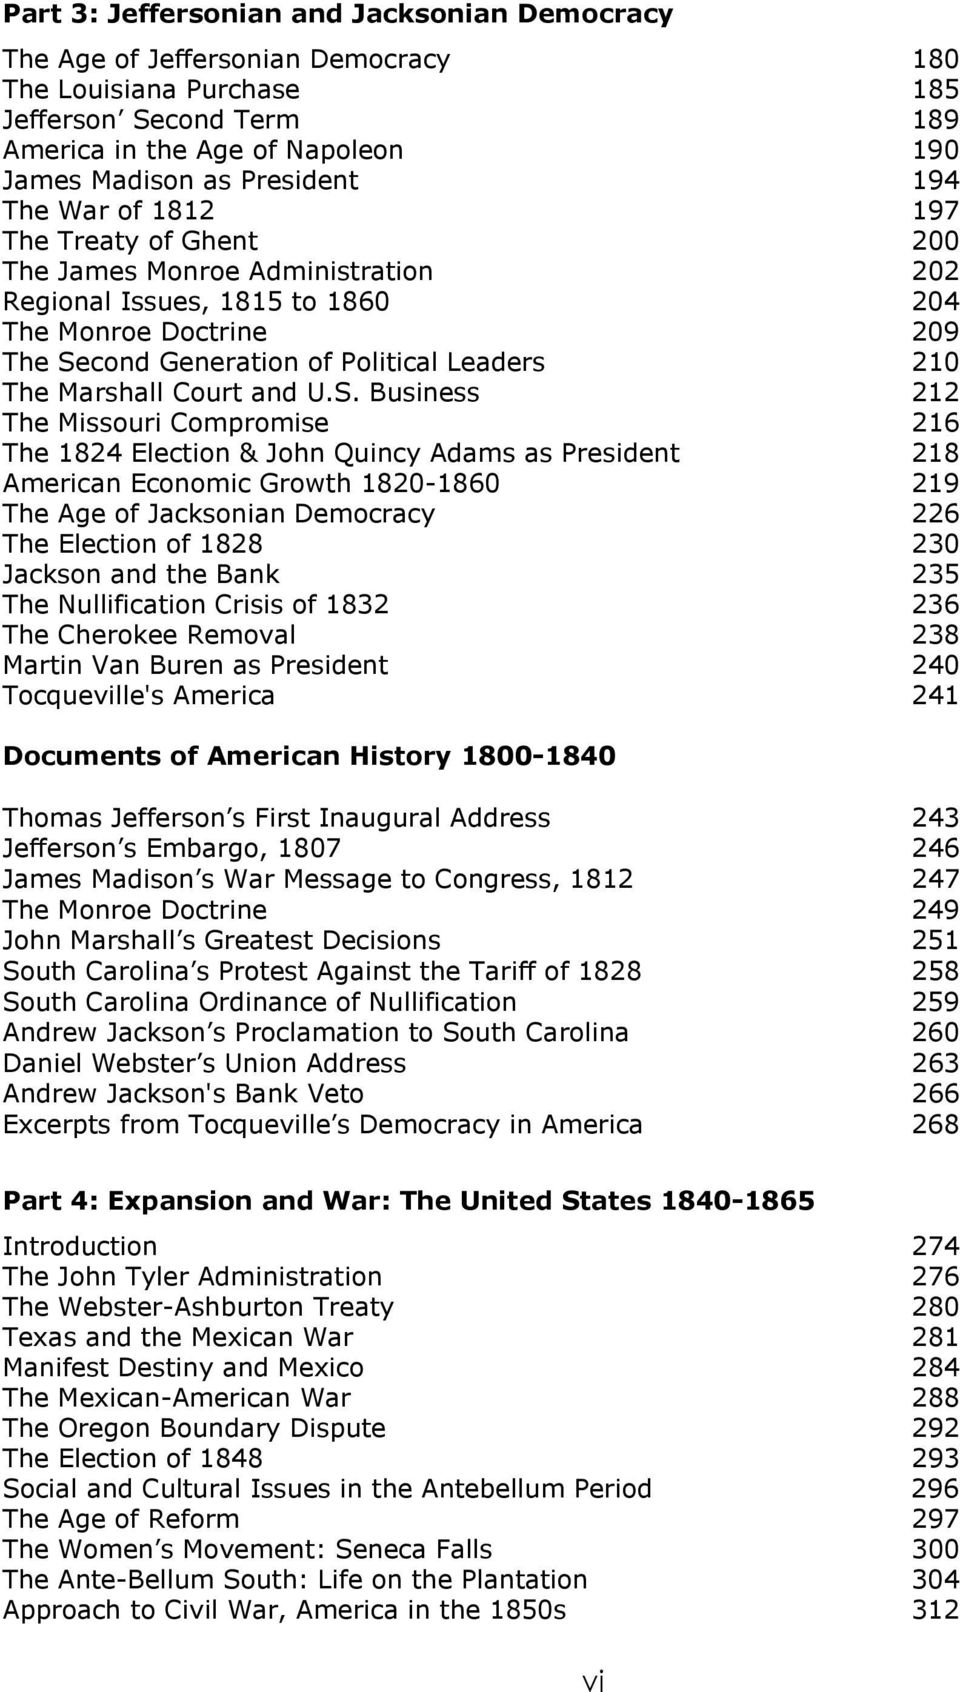 u s history i united states history text for history pdf marshall court and u s